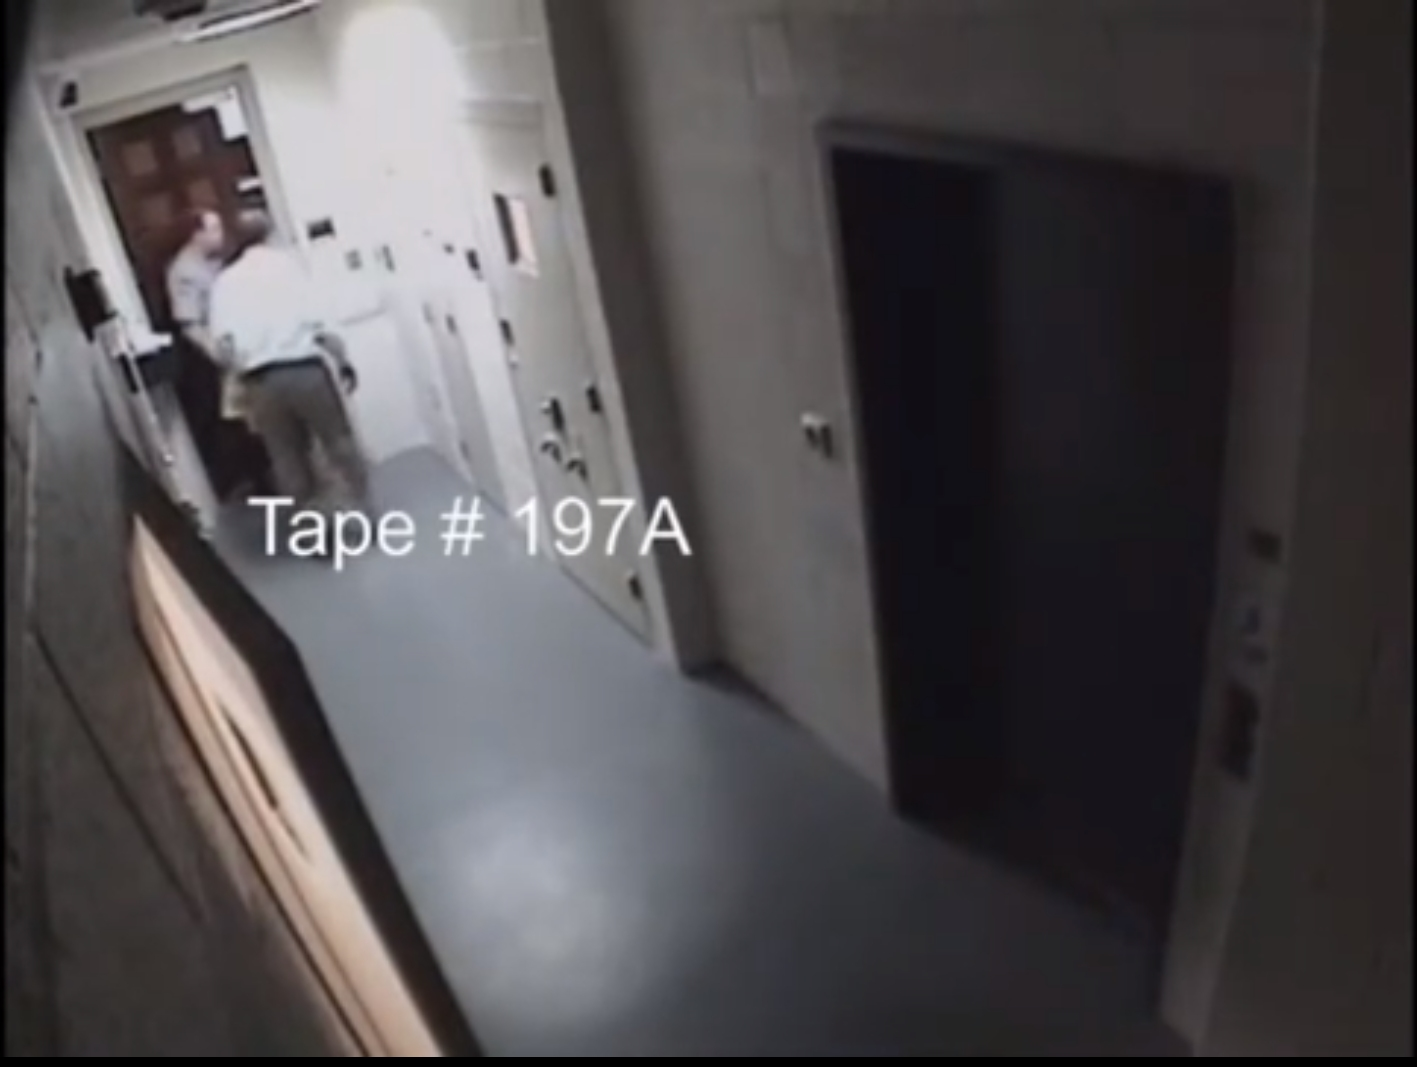 Tape # 197A